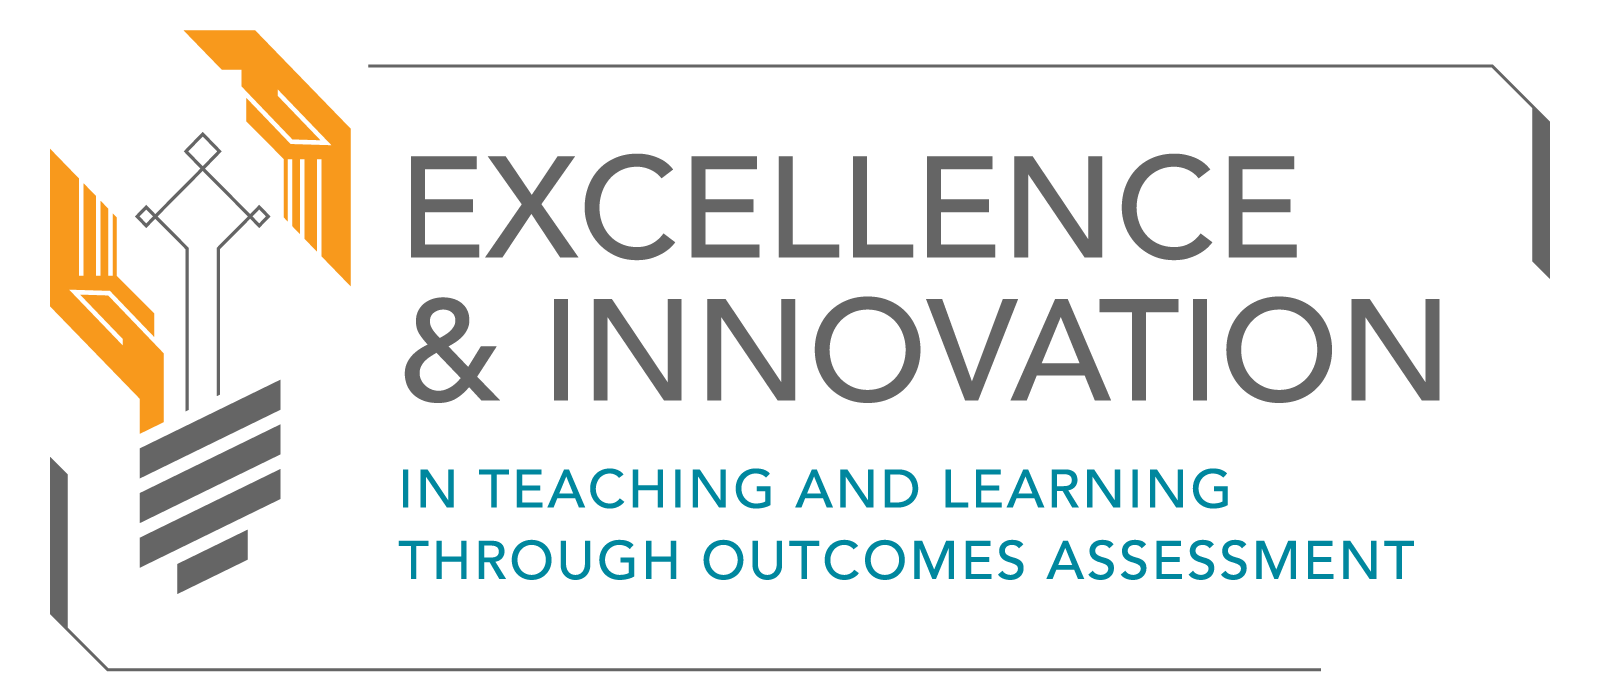 Excellence and Innovation in Teaching Through Outcomes Logo